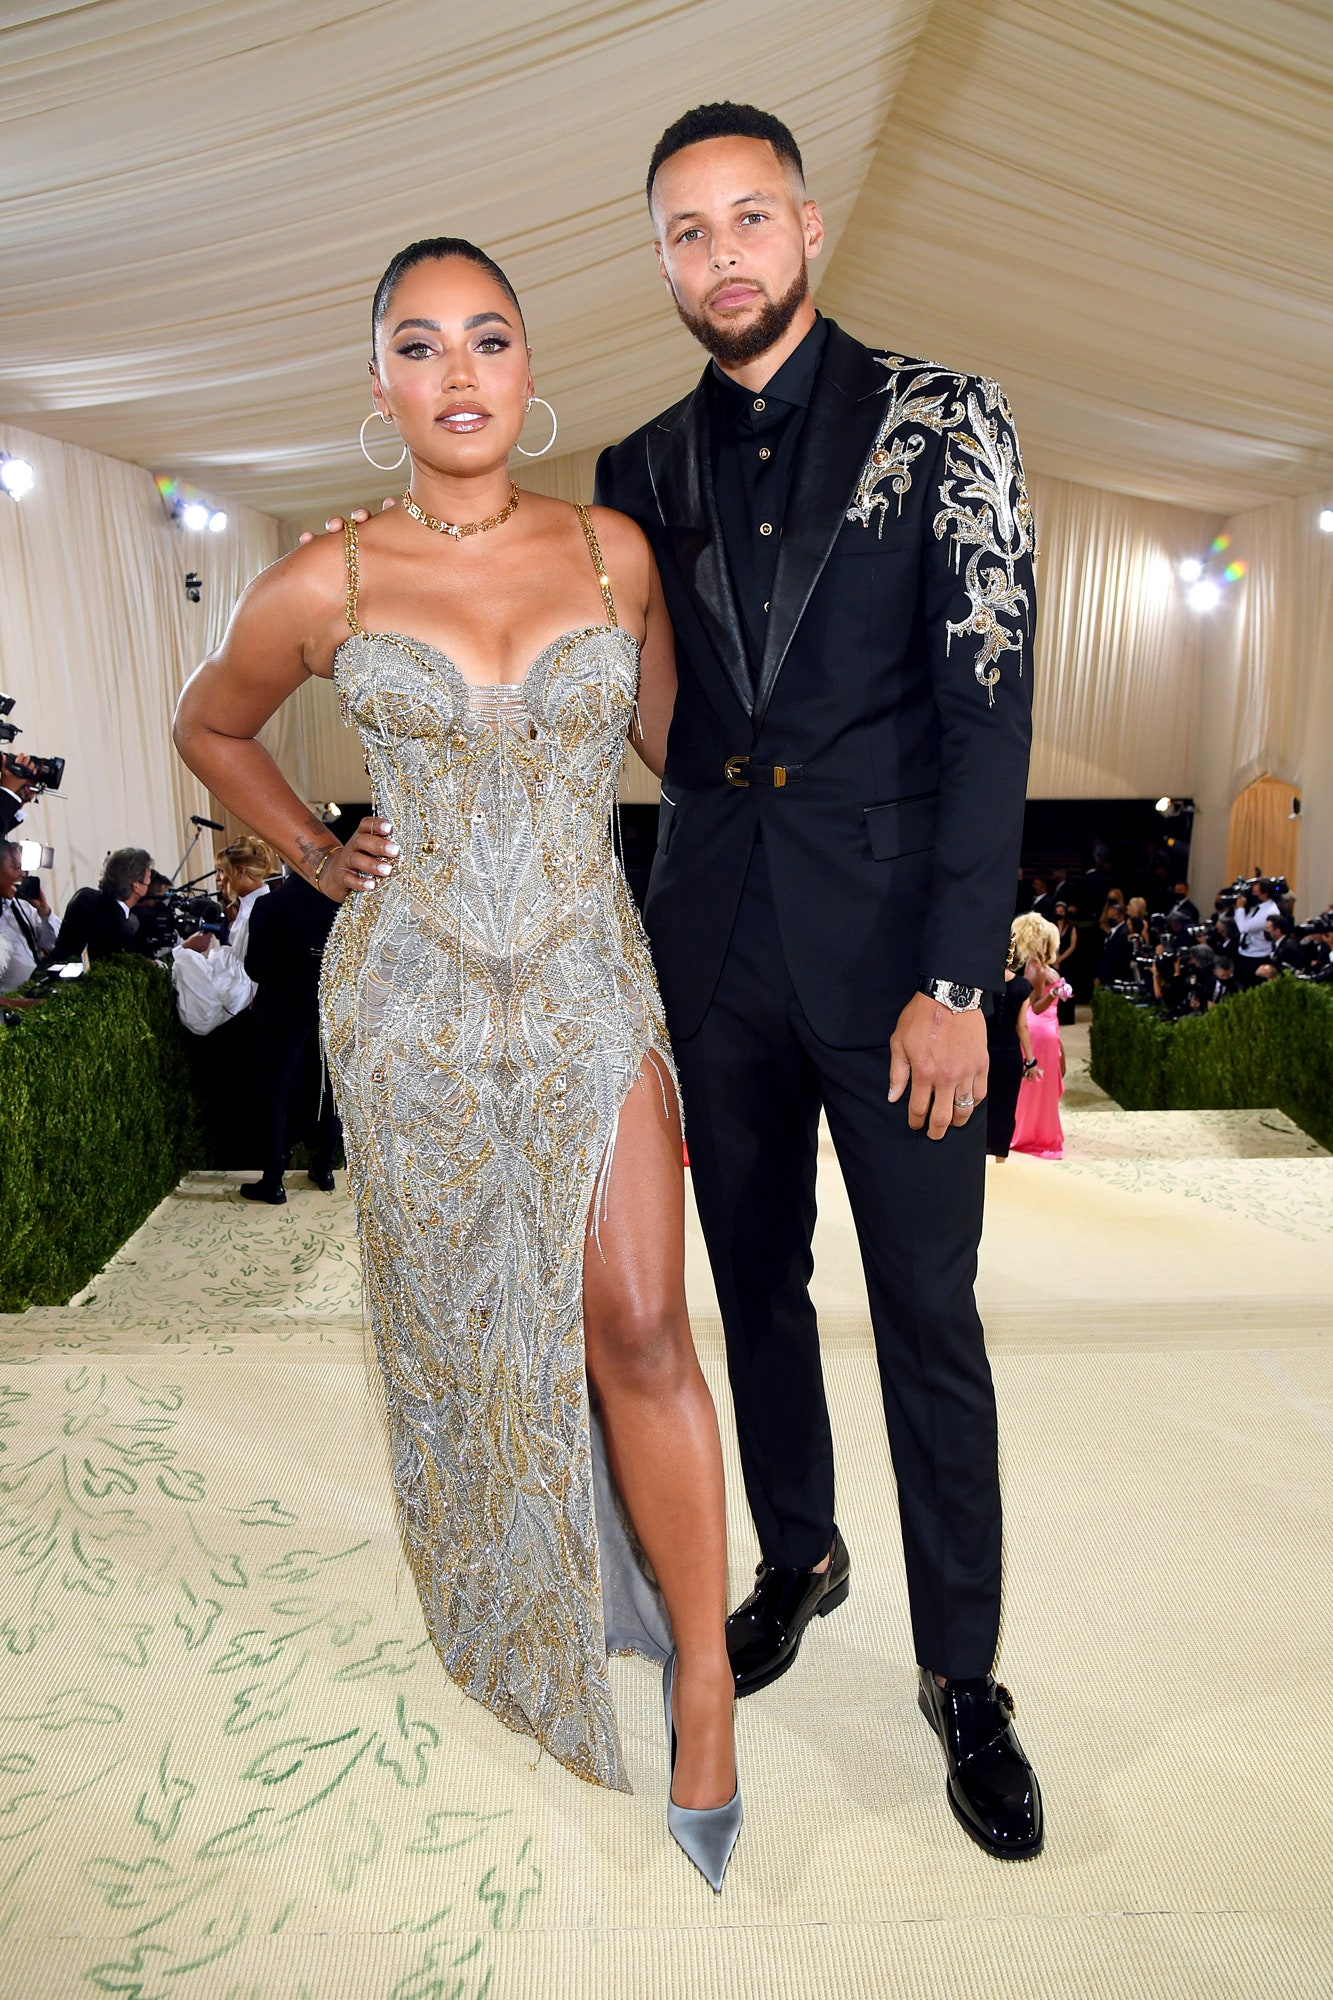 Golden State Warriors' point guard, Stephen Curry was on site with a stone set Royal Oak, seen here with his wife, Ayesha Curry